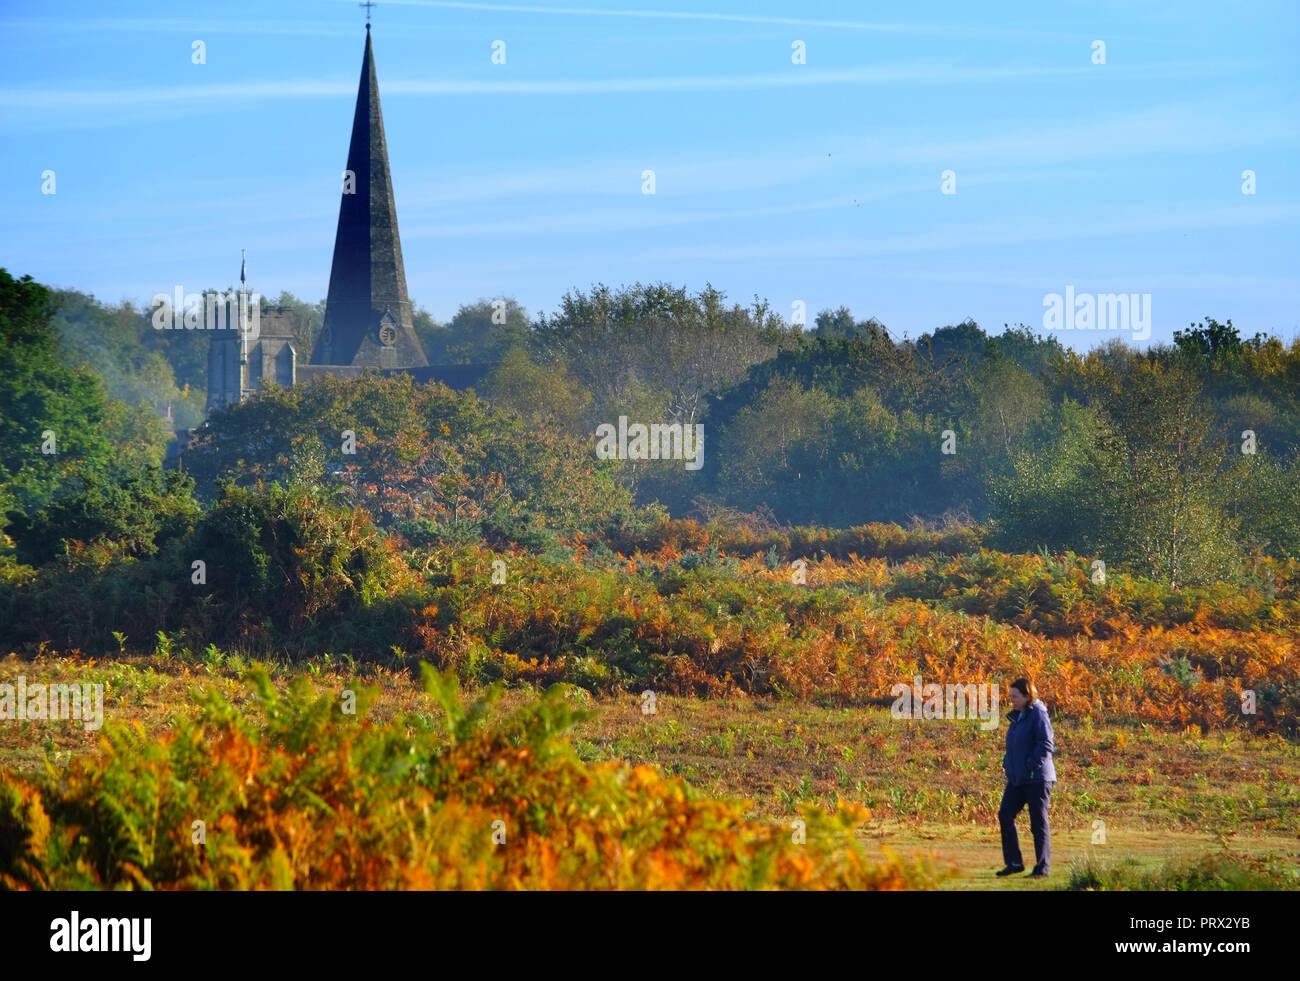 Chailey, East Sussex. 5th October 2018. UK Weather: Bright autumnal morning on Chailey Common, East Sussex. ©Peter Cripps/Alamy Live News - Stock Image